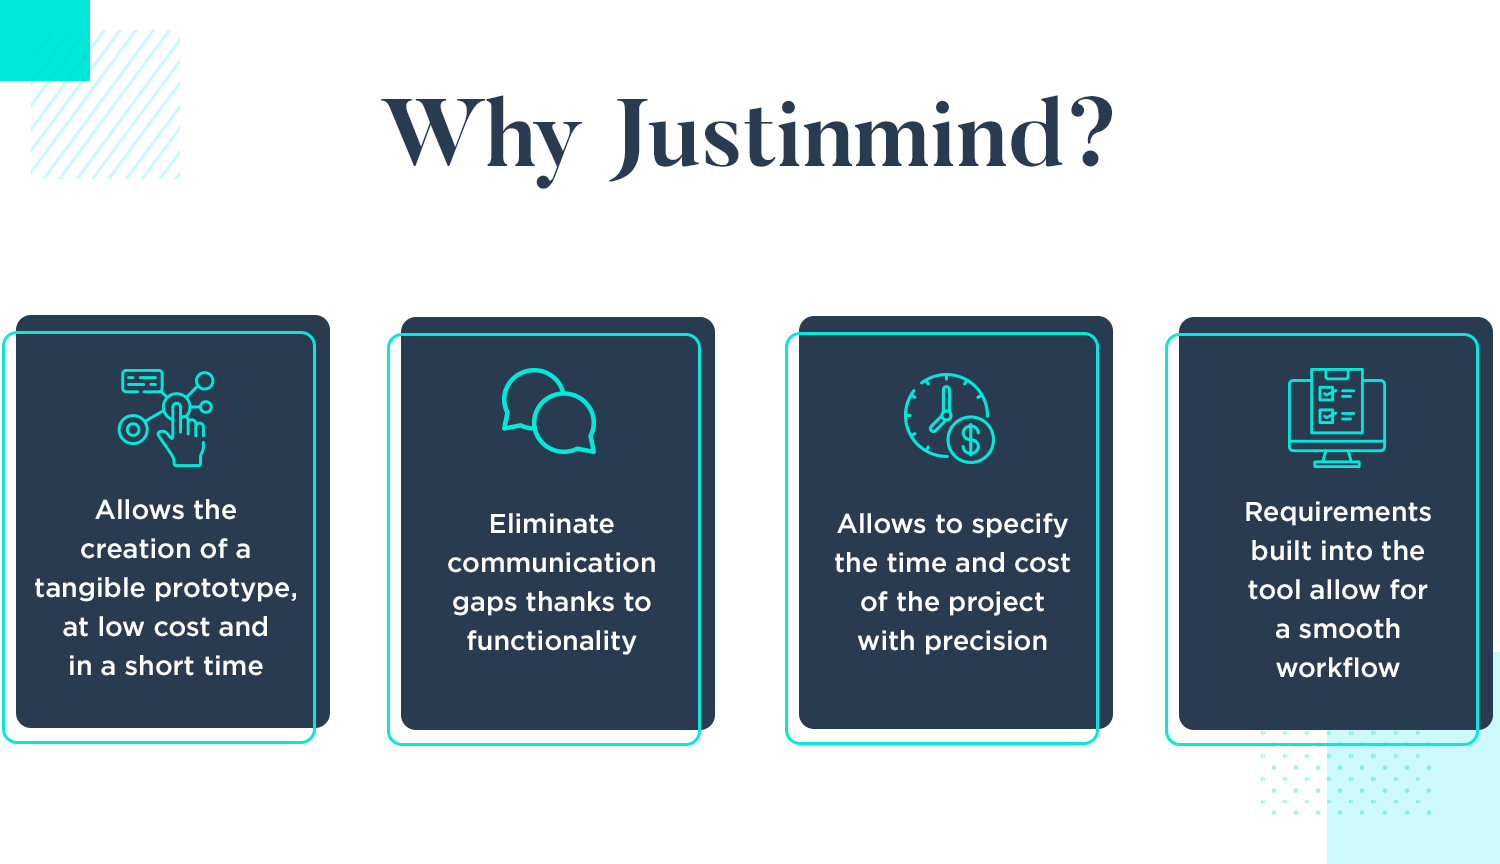 why virtina uses and trusts justinmind